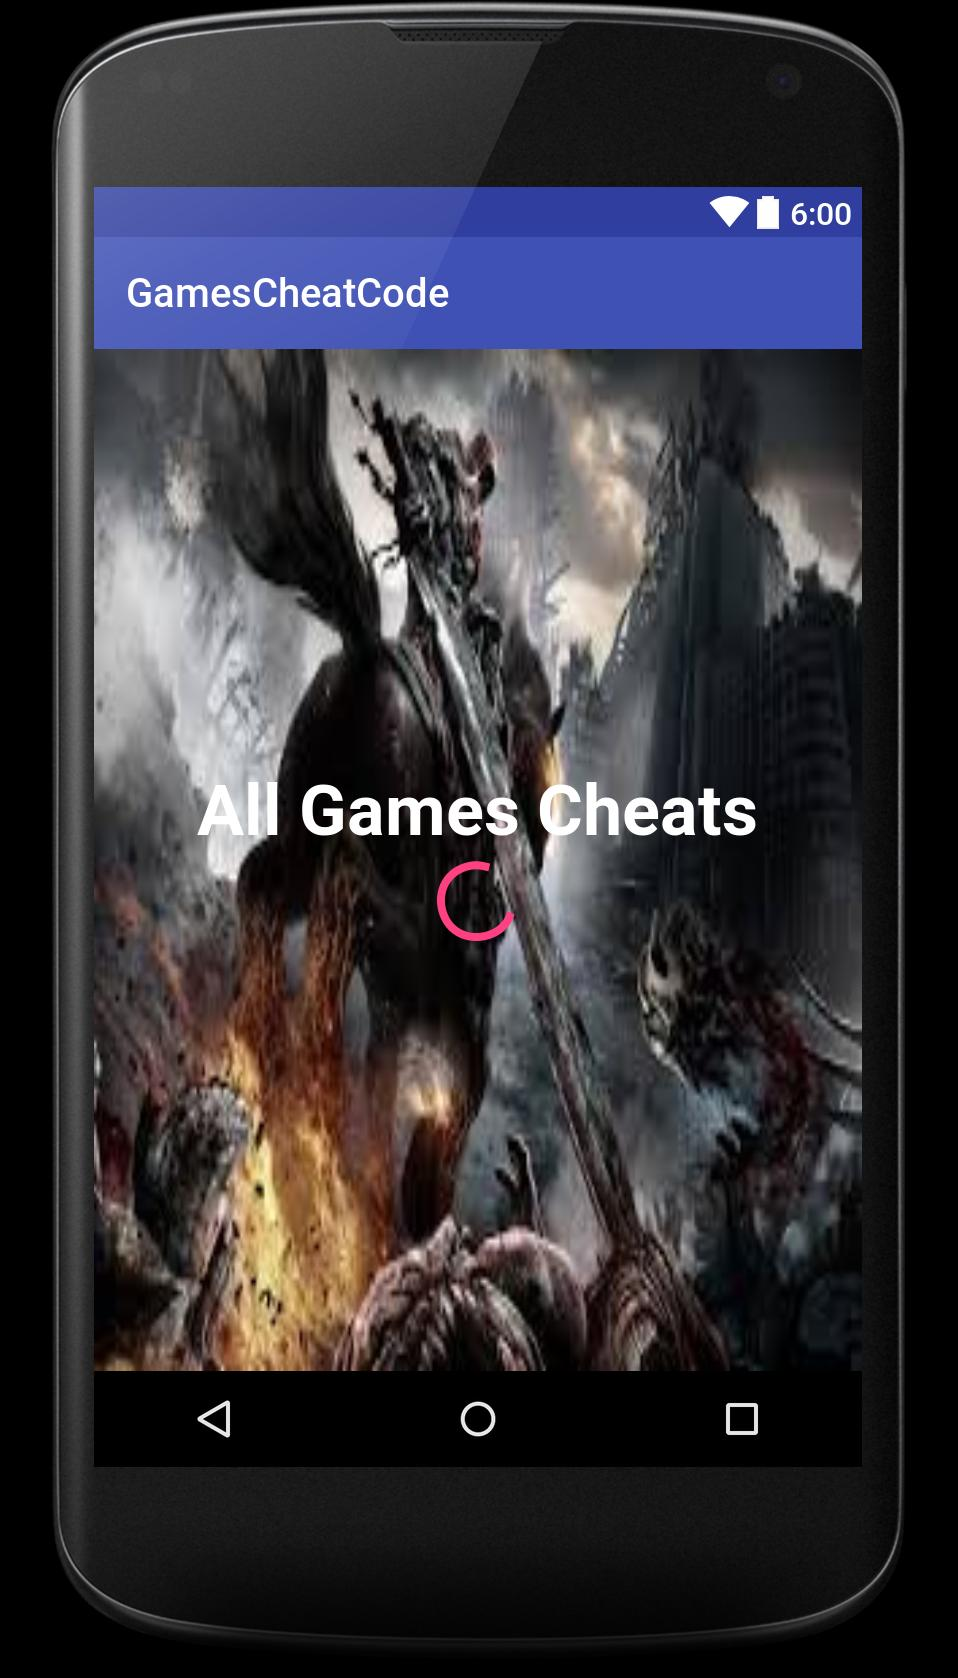 Games Cheat Code for Android - APK Download